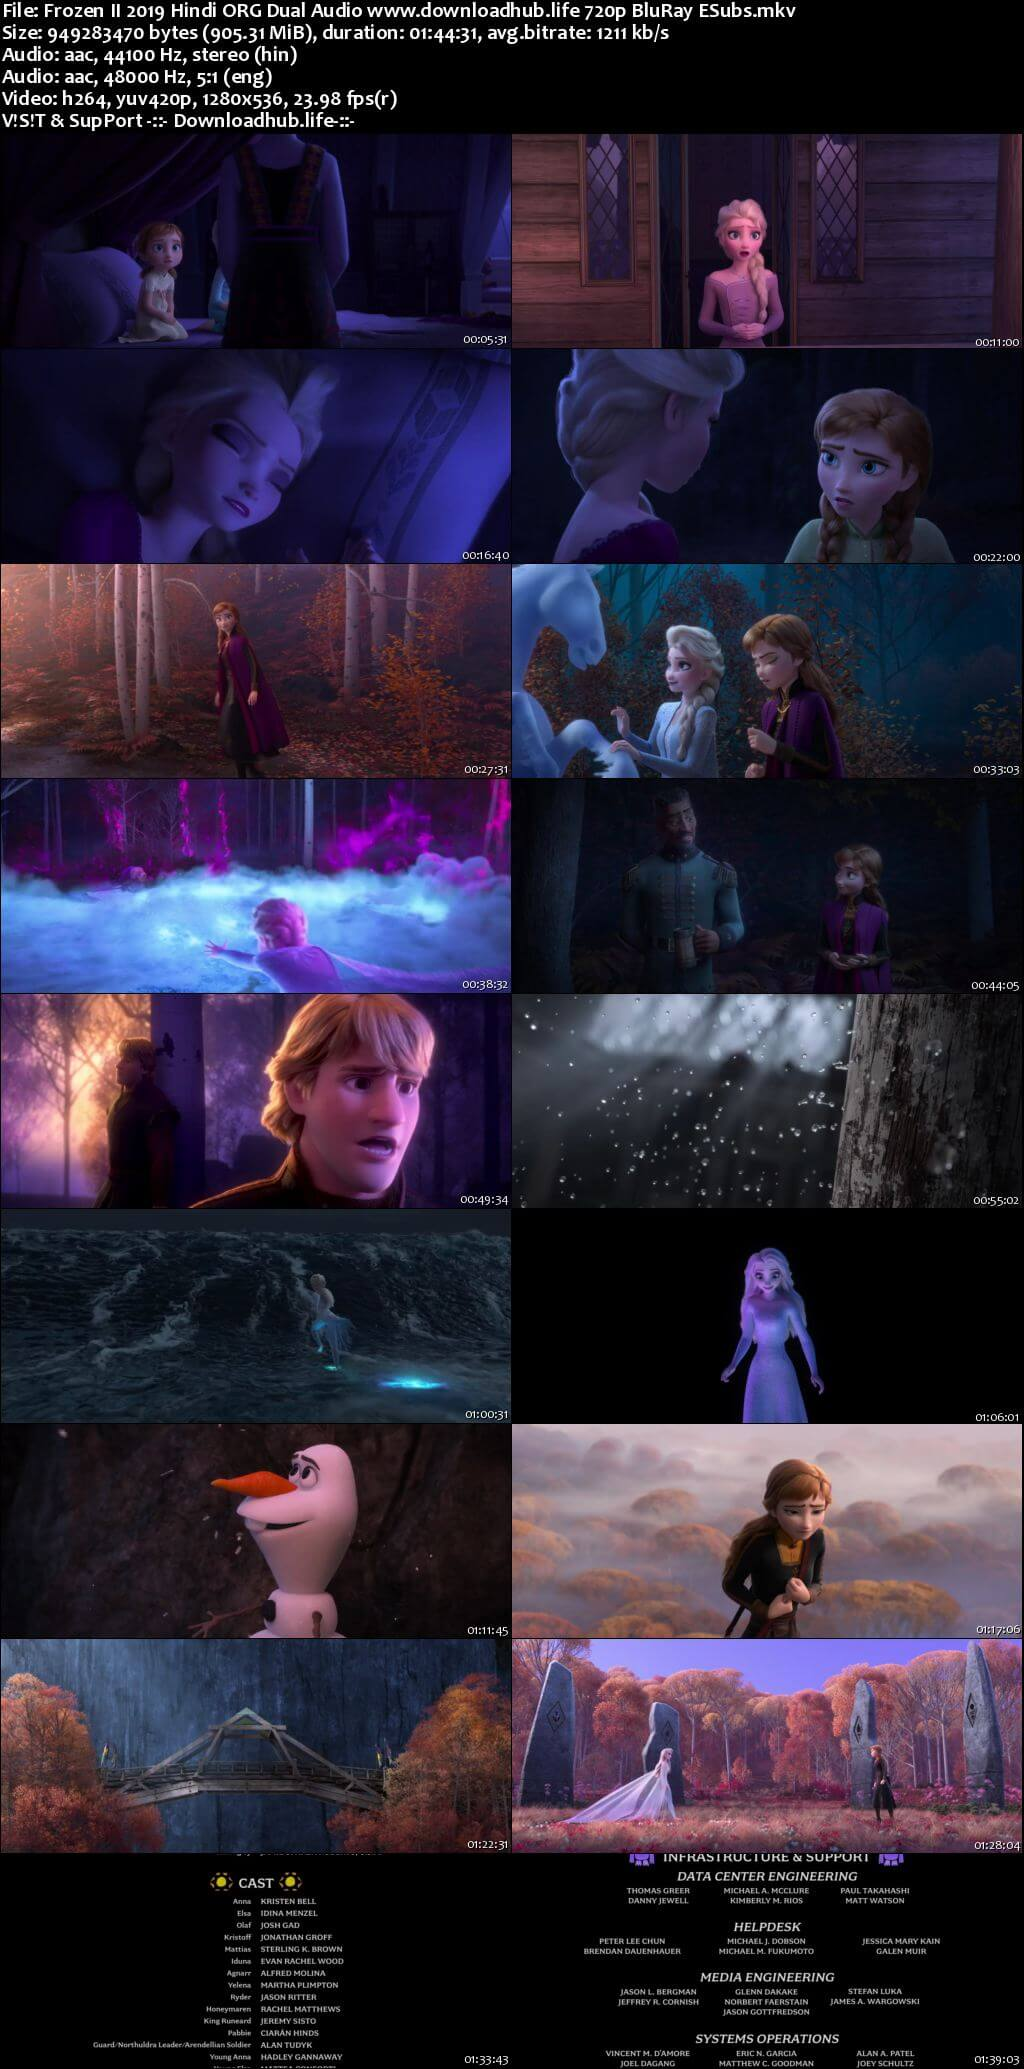 Frozen II 2019 Hindi ORG Dual Audio 720p BluRay ESubs